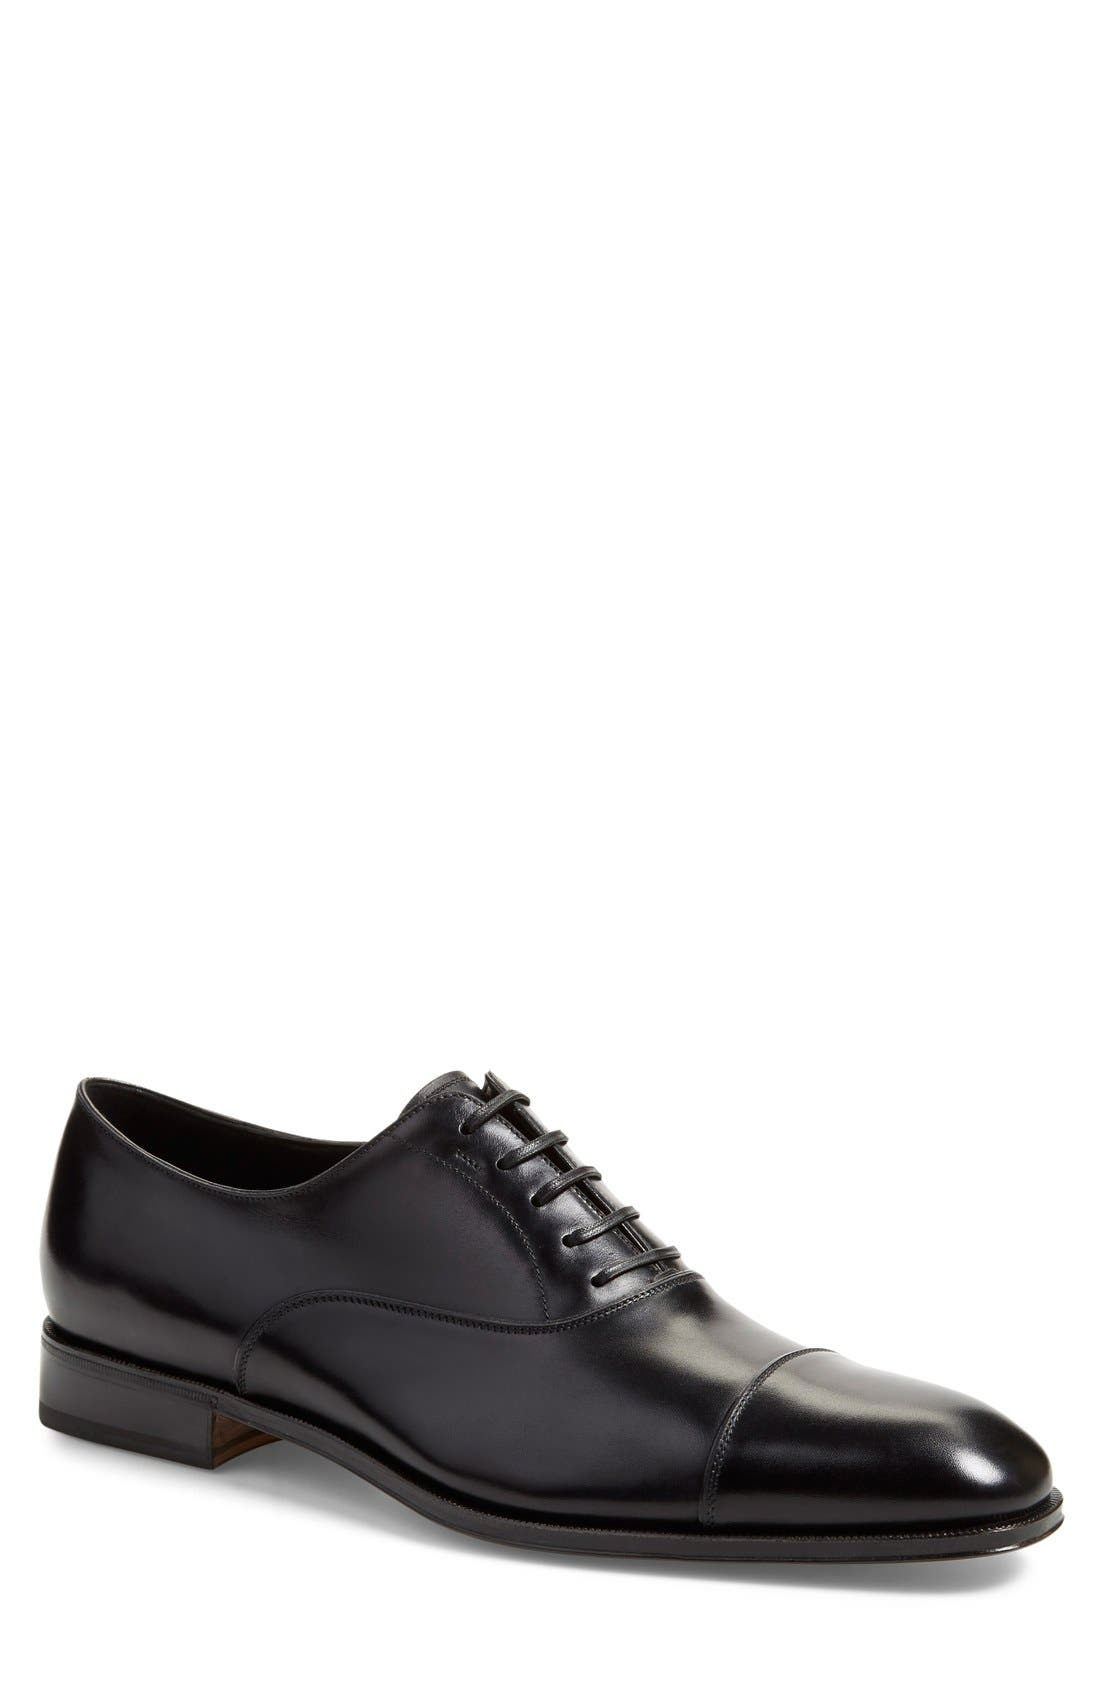 Salvatore Ferragamo Luce Cap Toe Oxford